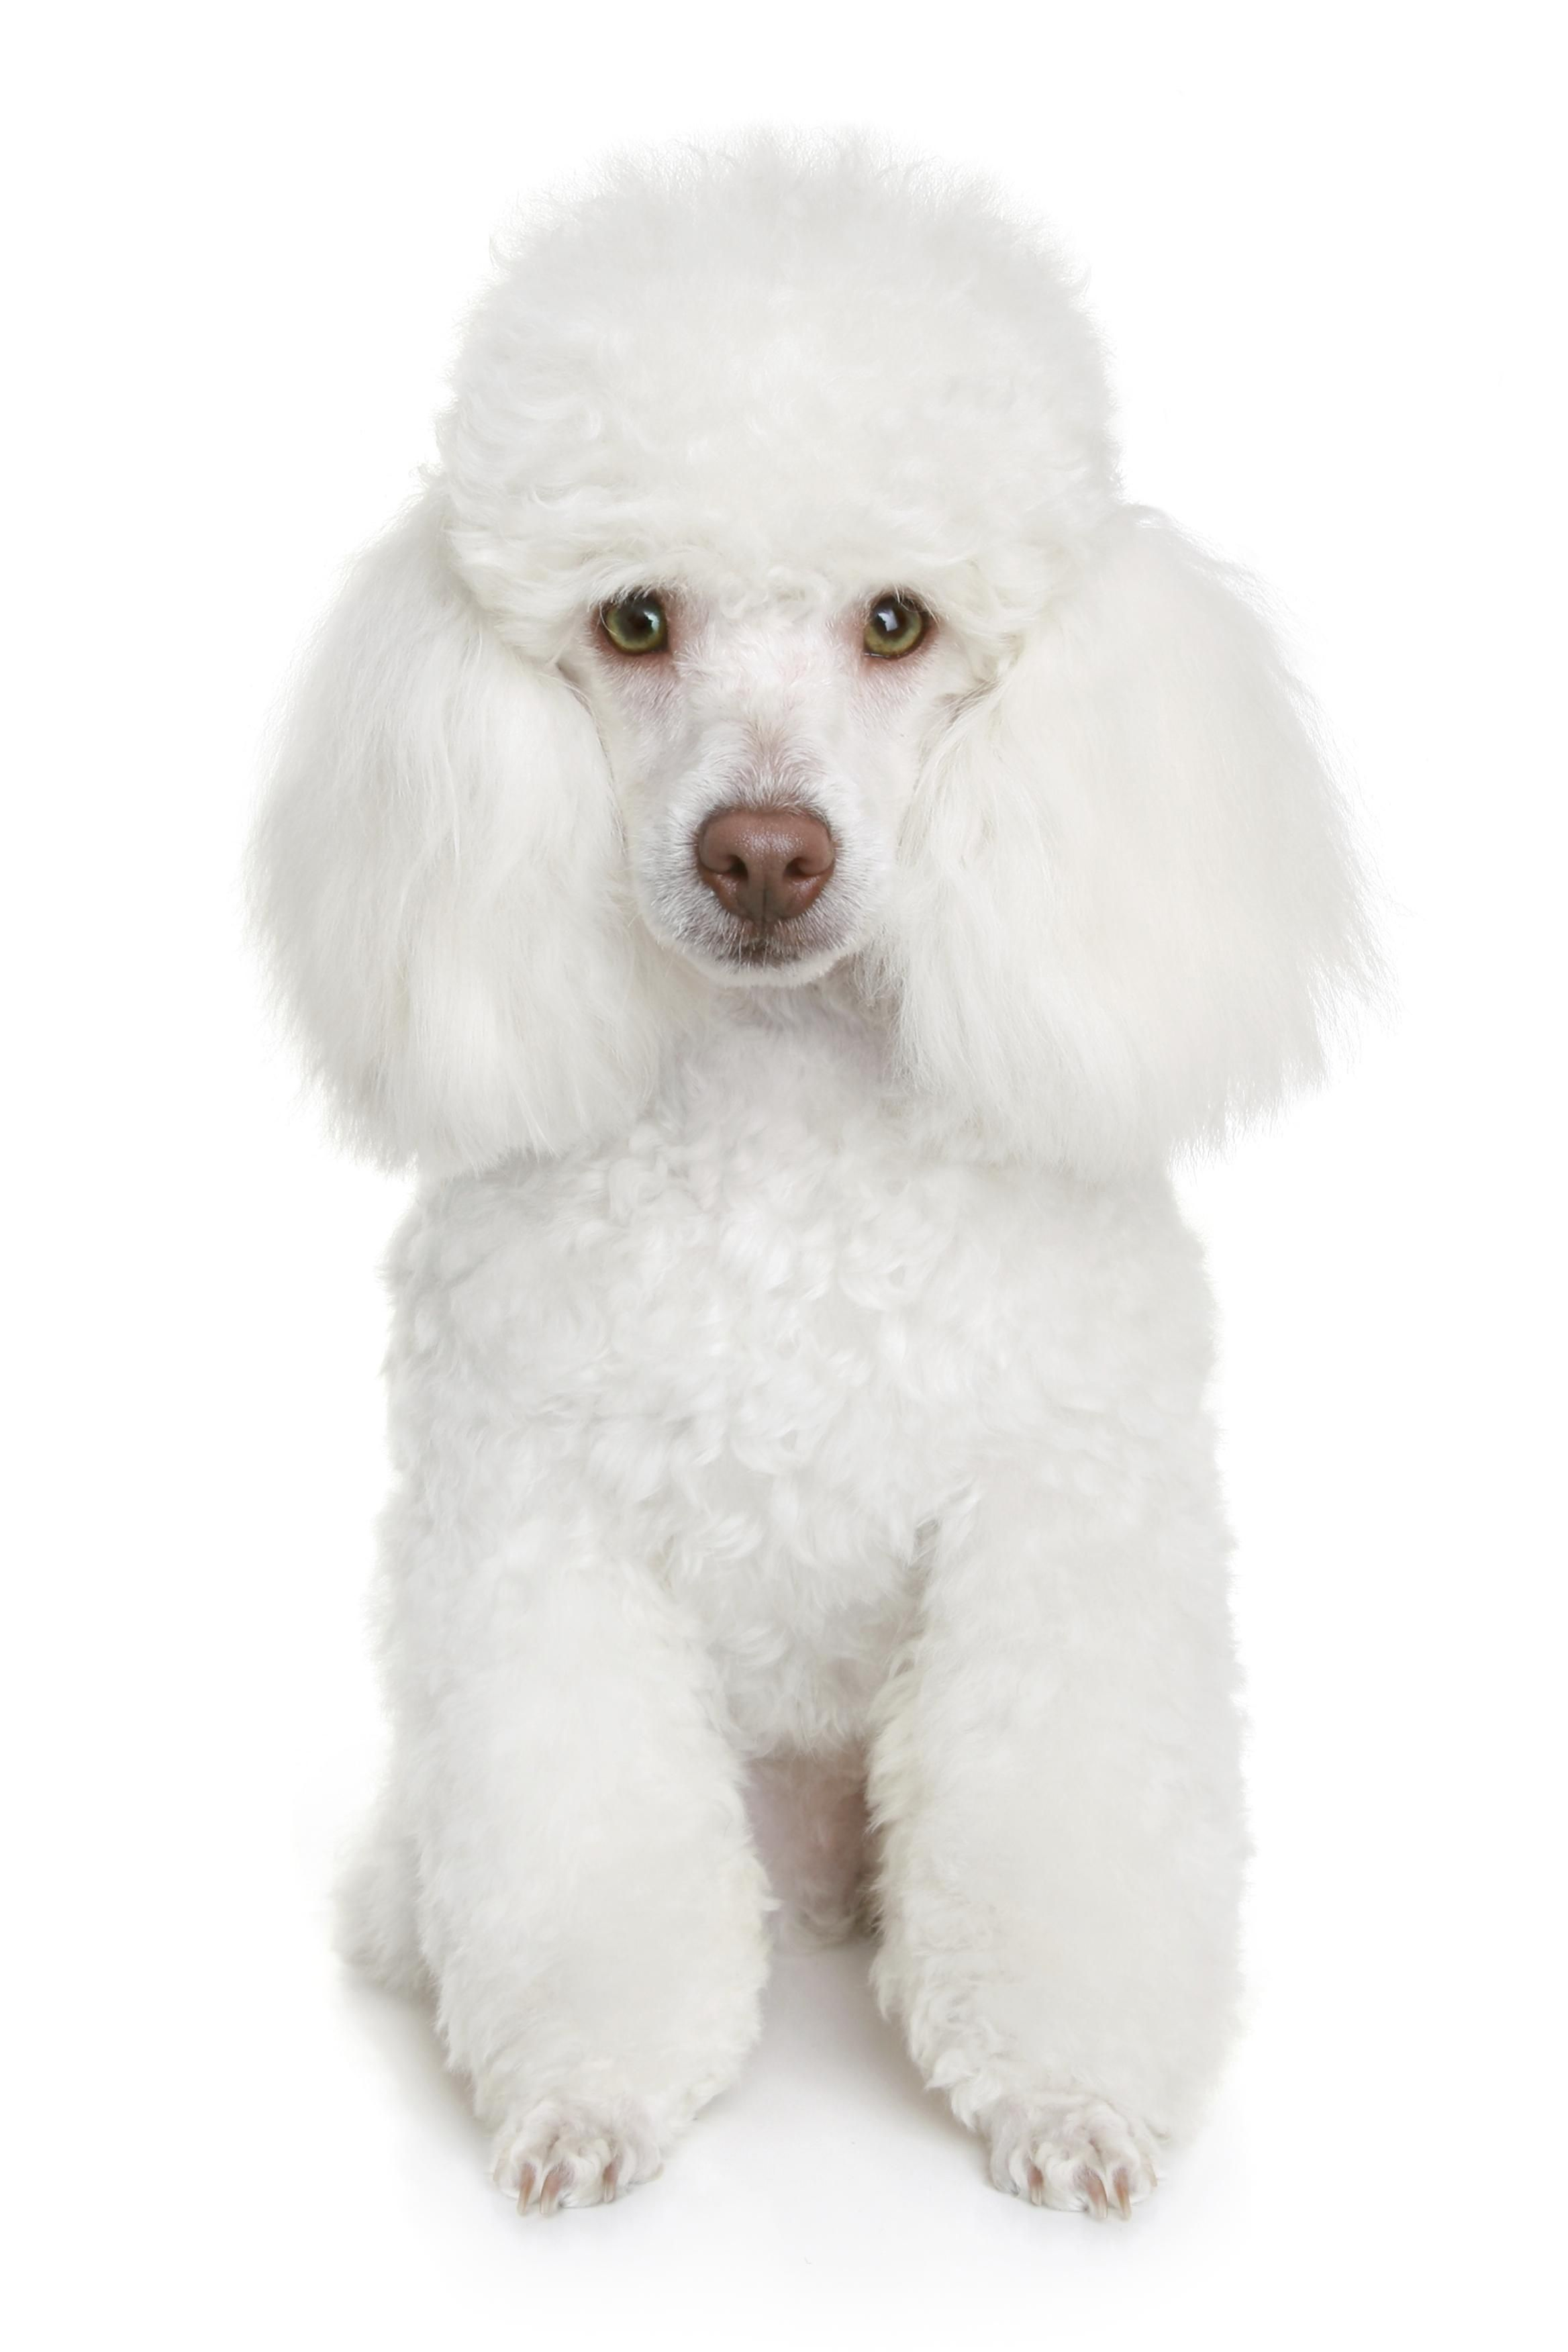 French Poodle Haircut Styles 5 Steps Poodle Haircut Poodle